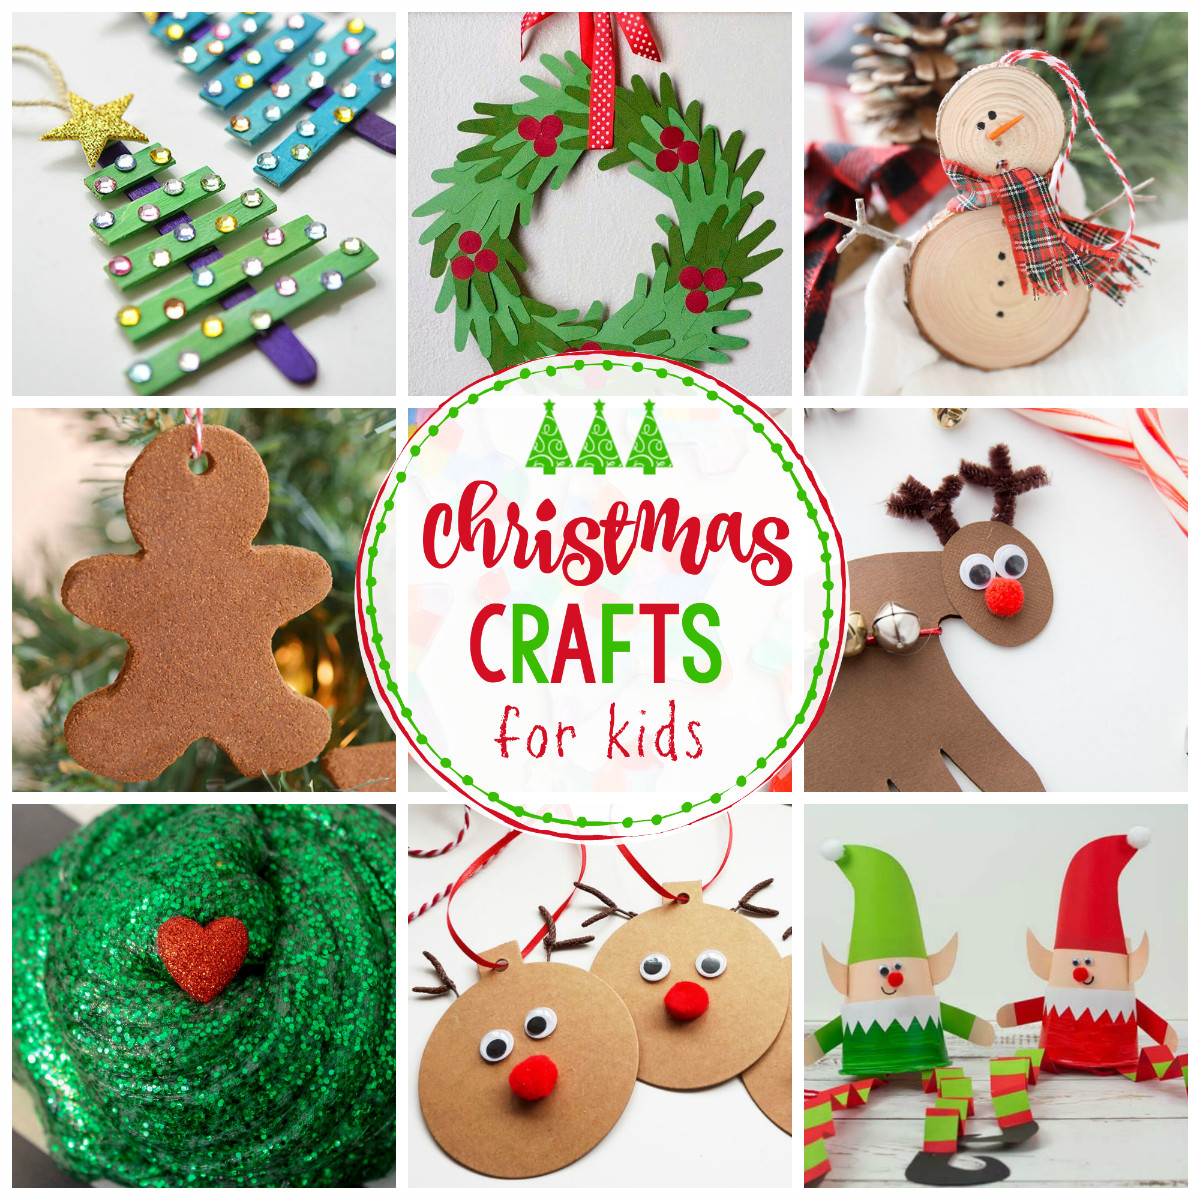 Best ideas about Crafts To Make For Kids . Save or Pin 25 Easy Christmas Crafts for Kids Crazy Little Projects Now.